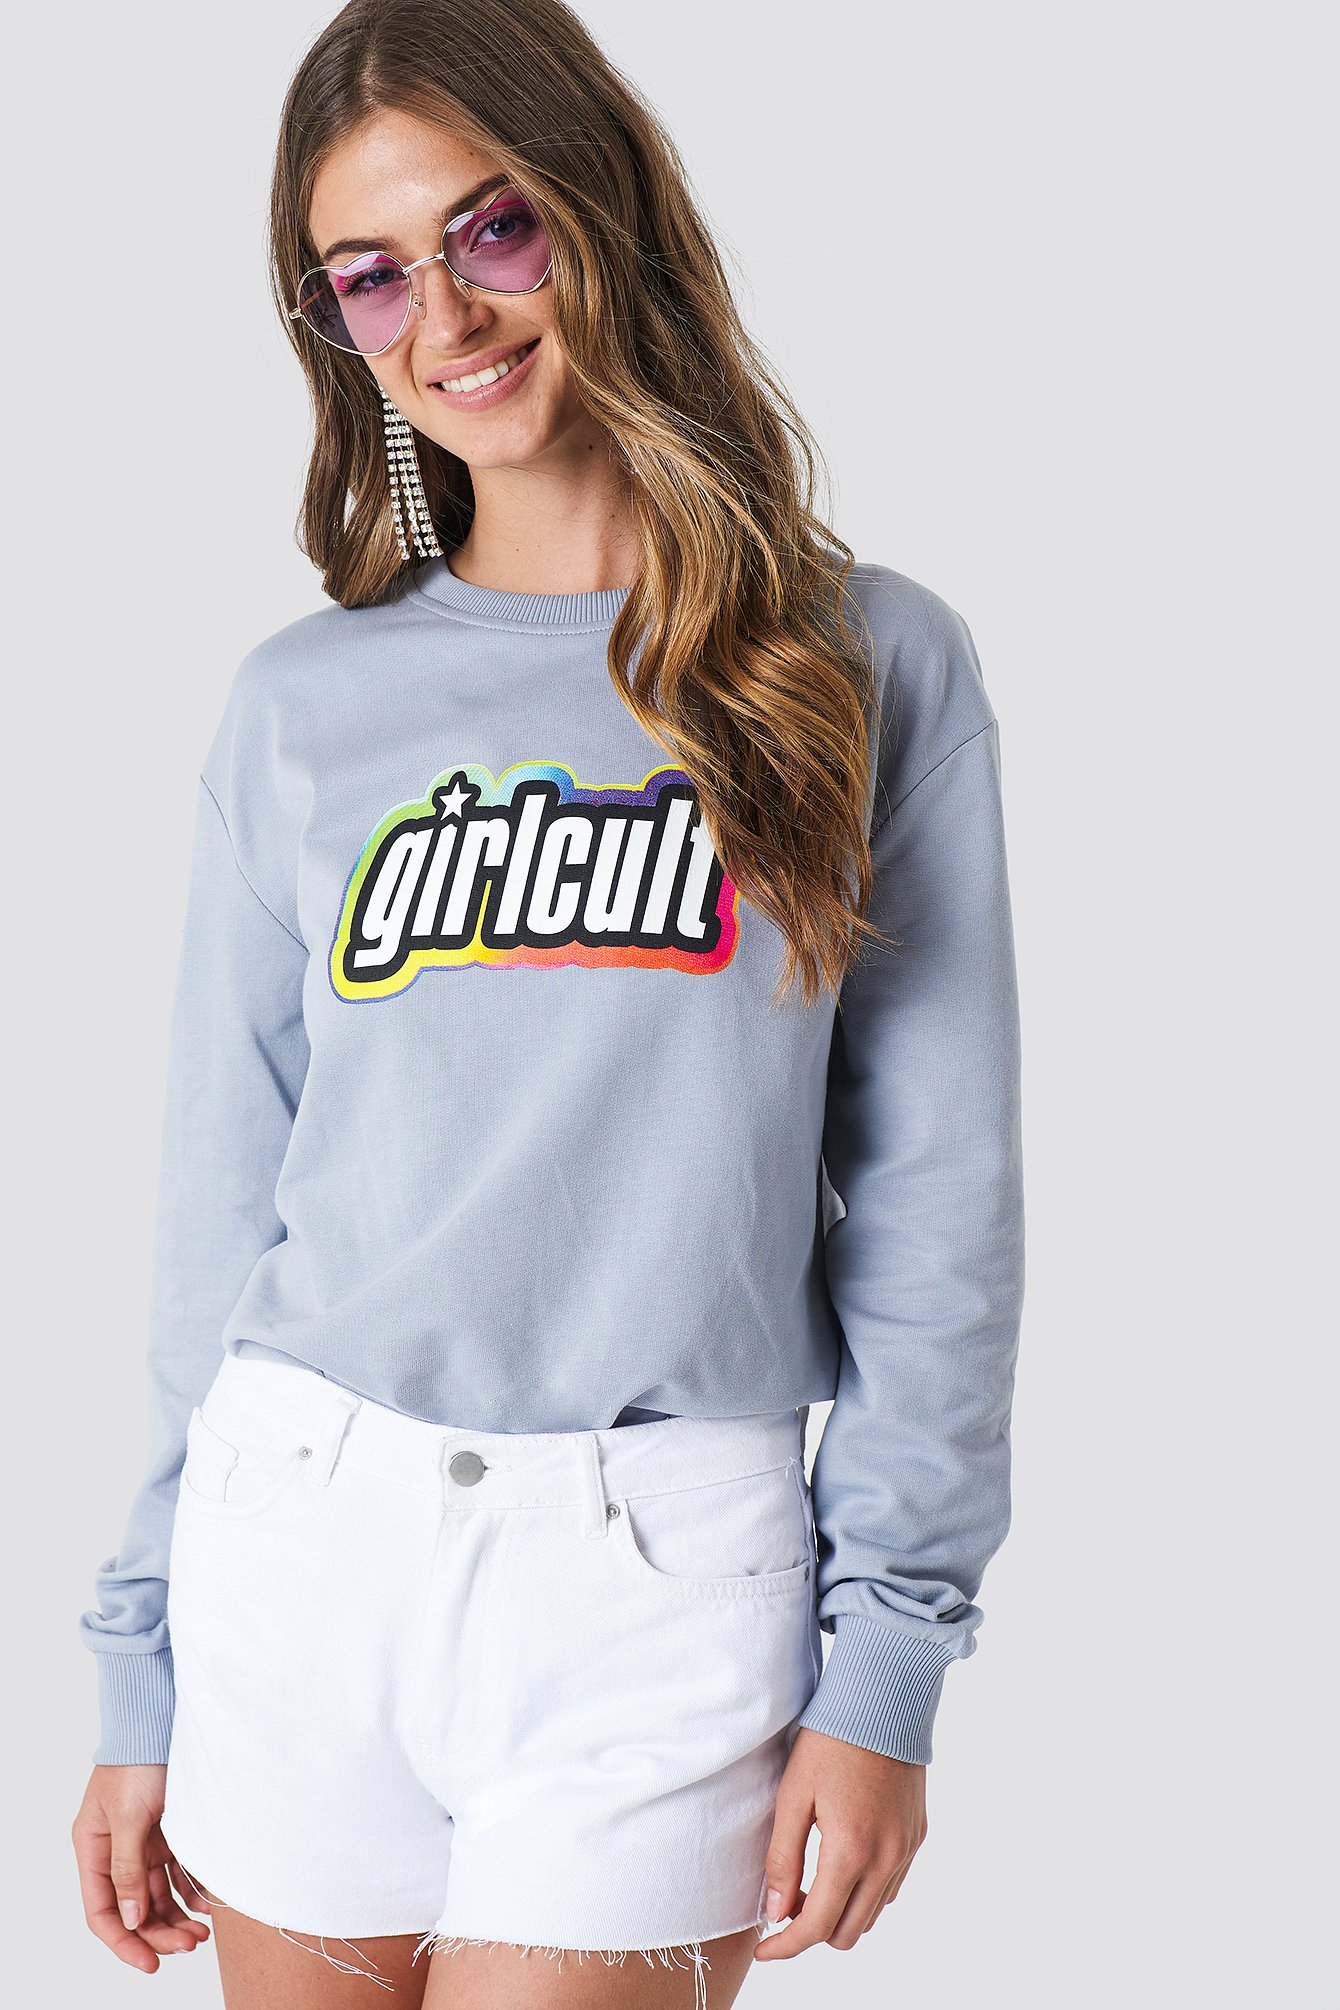 GIRL CULT SWEATSHIRT - GREY